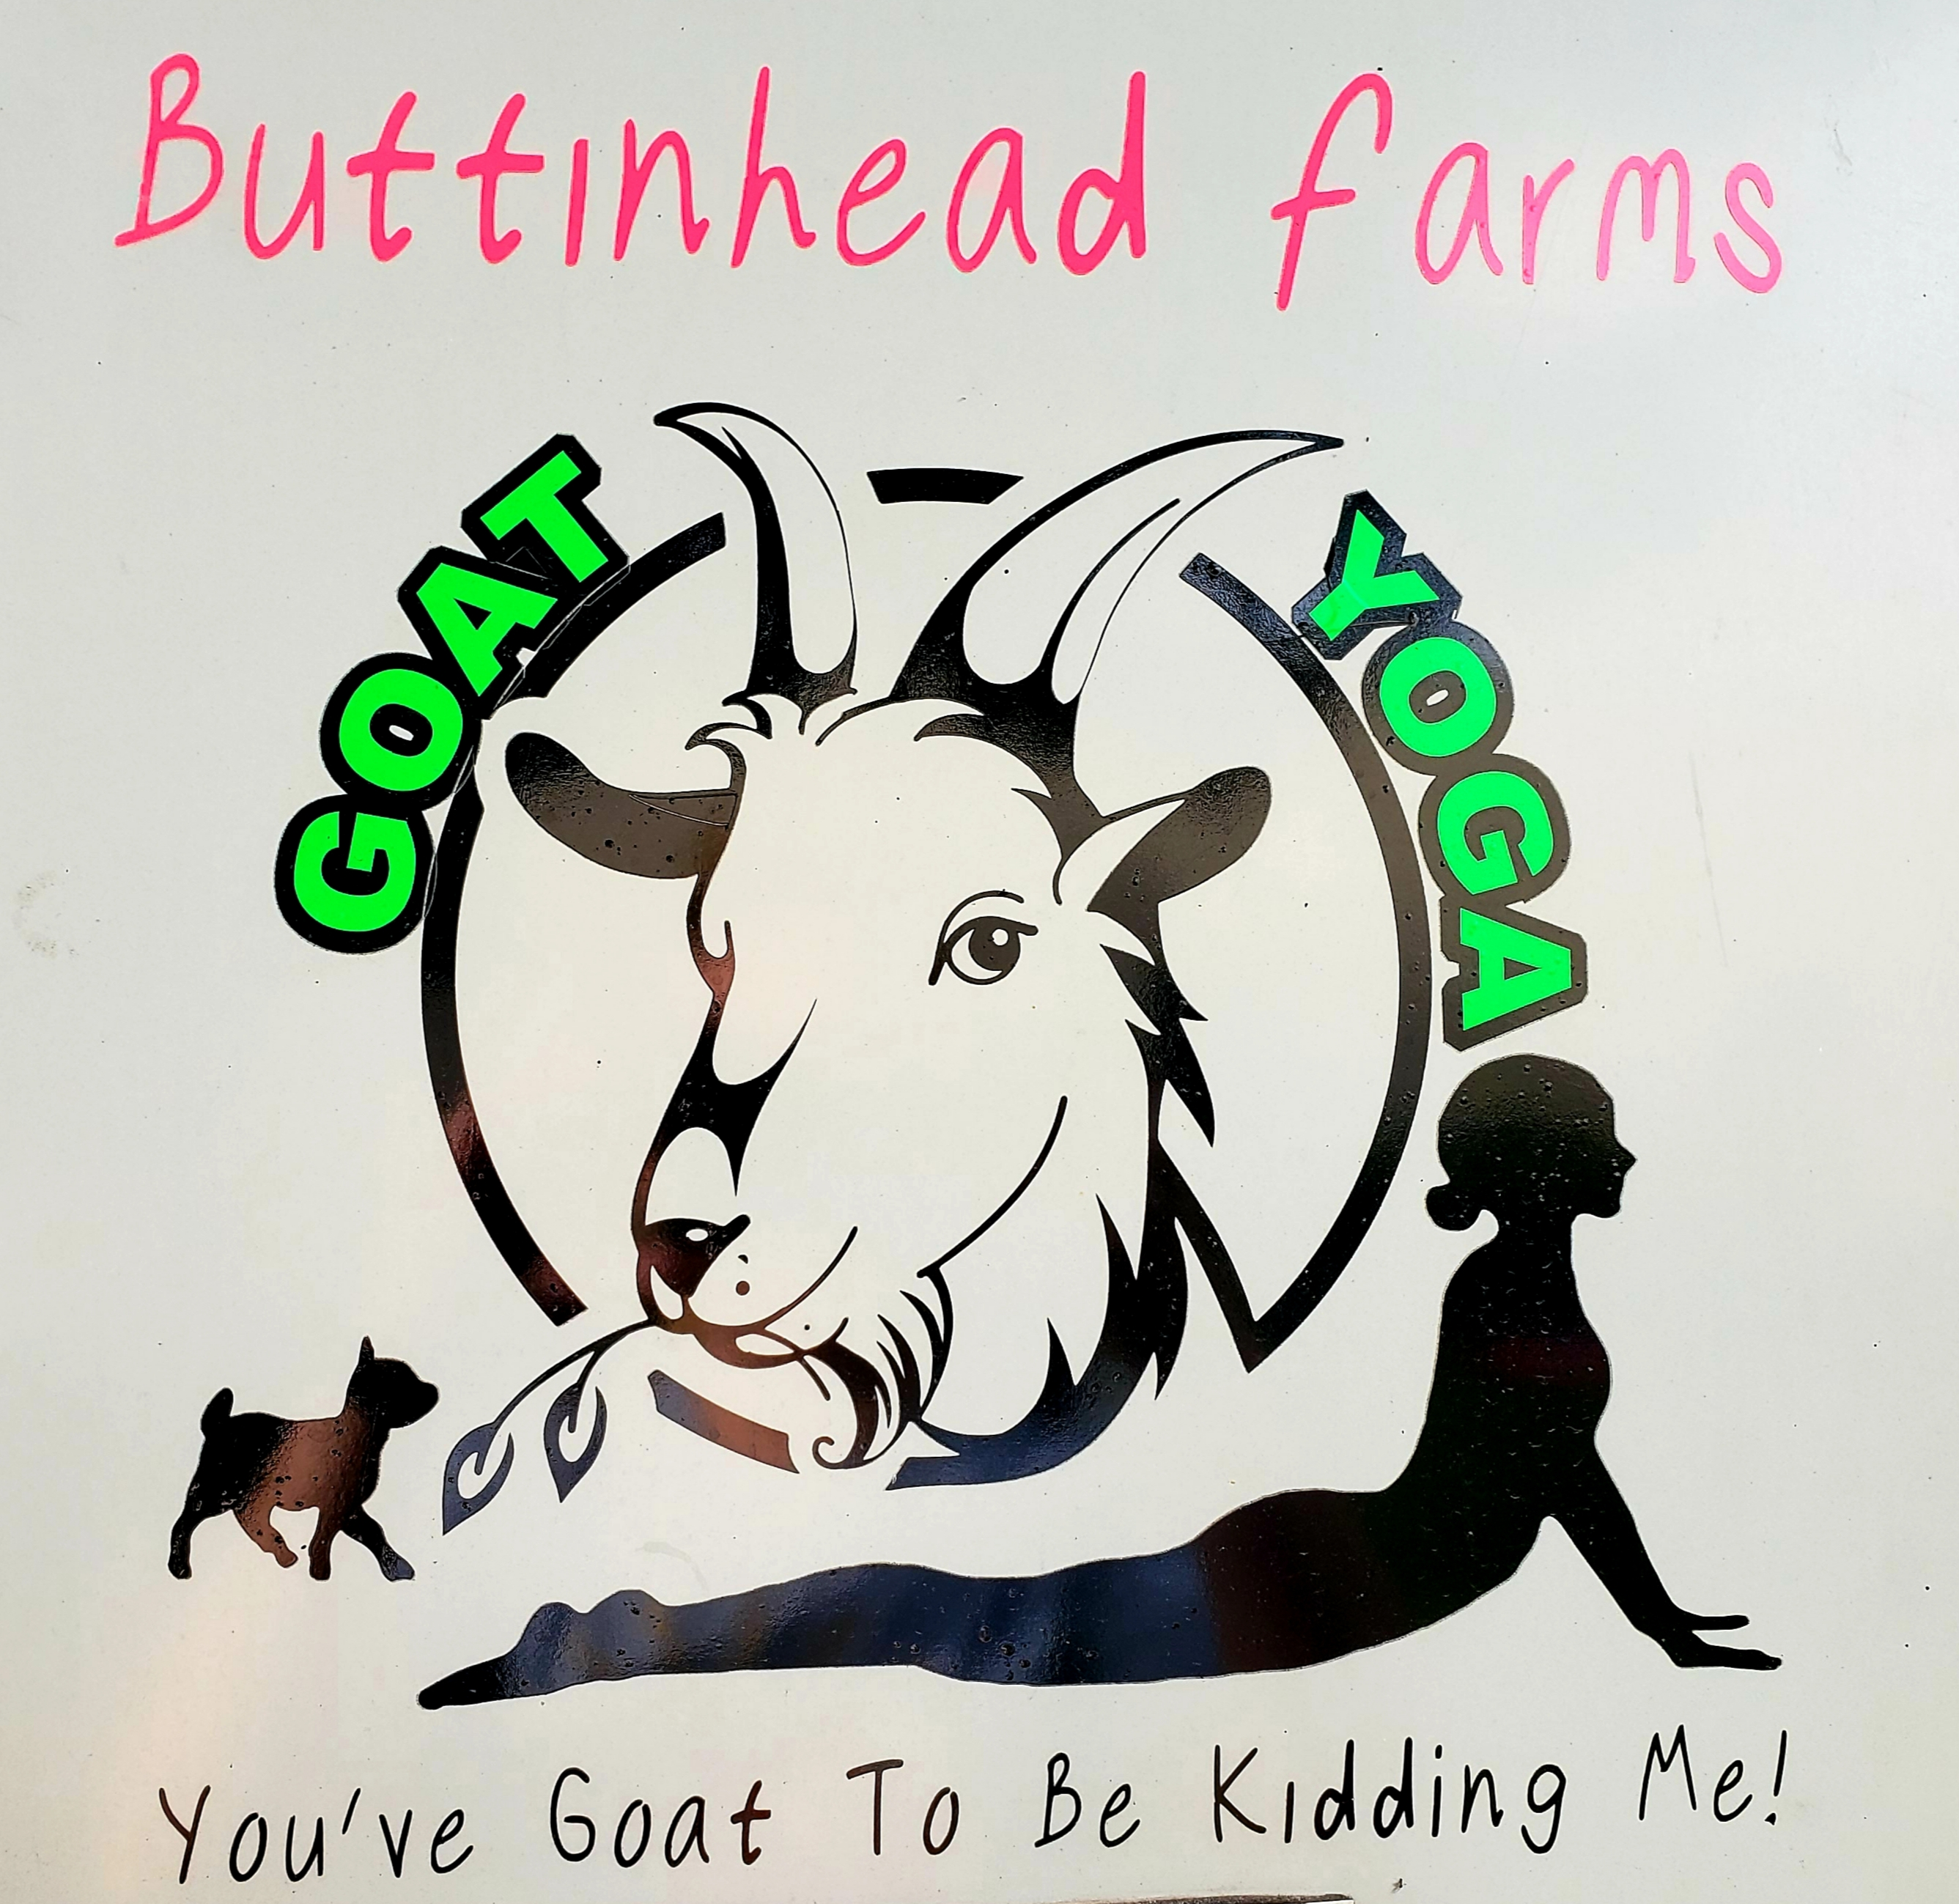 Buttinhead-Farms